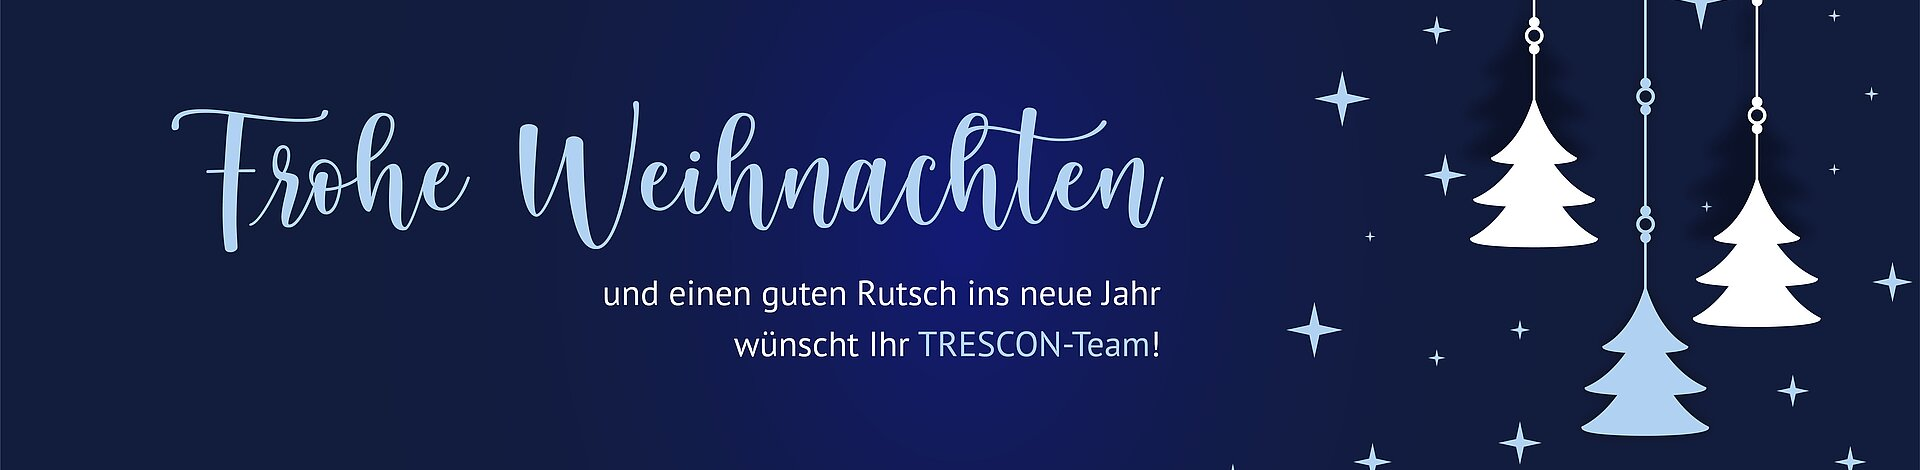 [Translate to English:] TRESCON Weihnachten